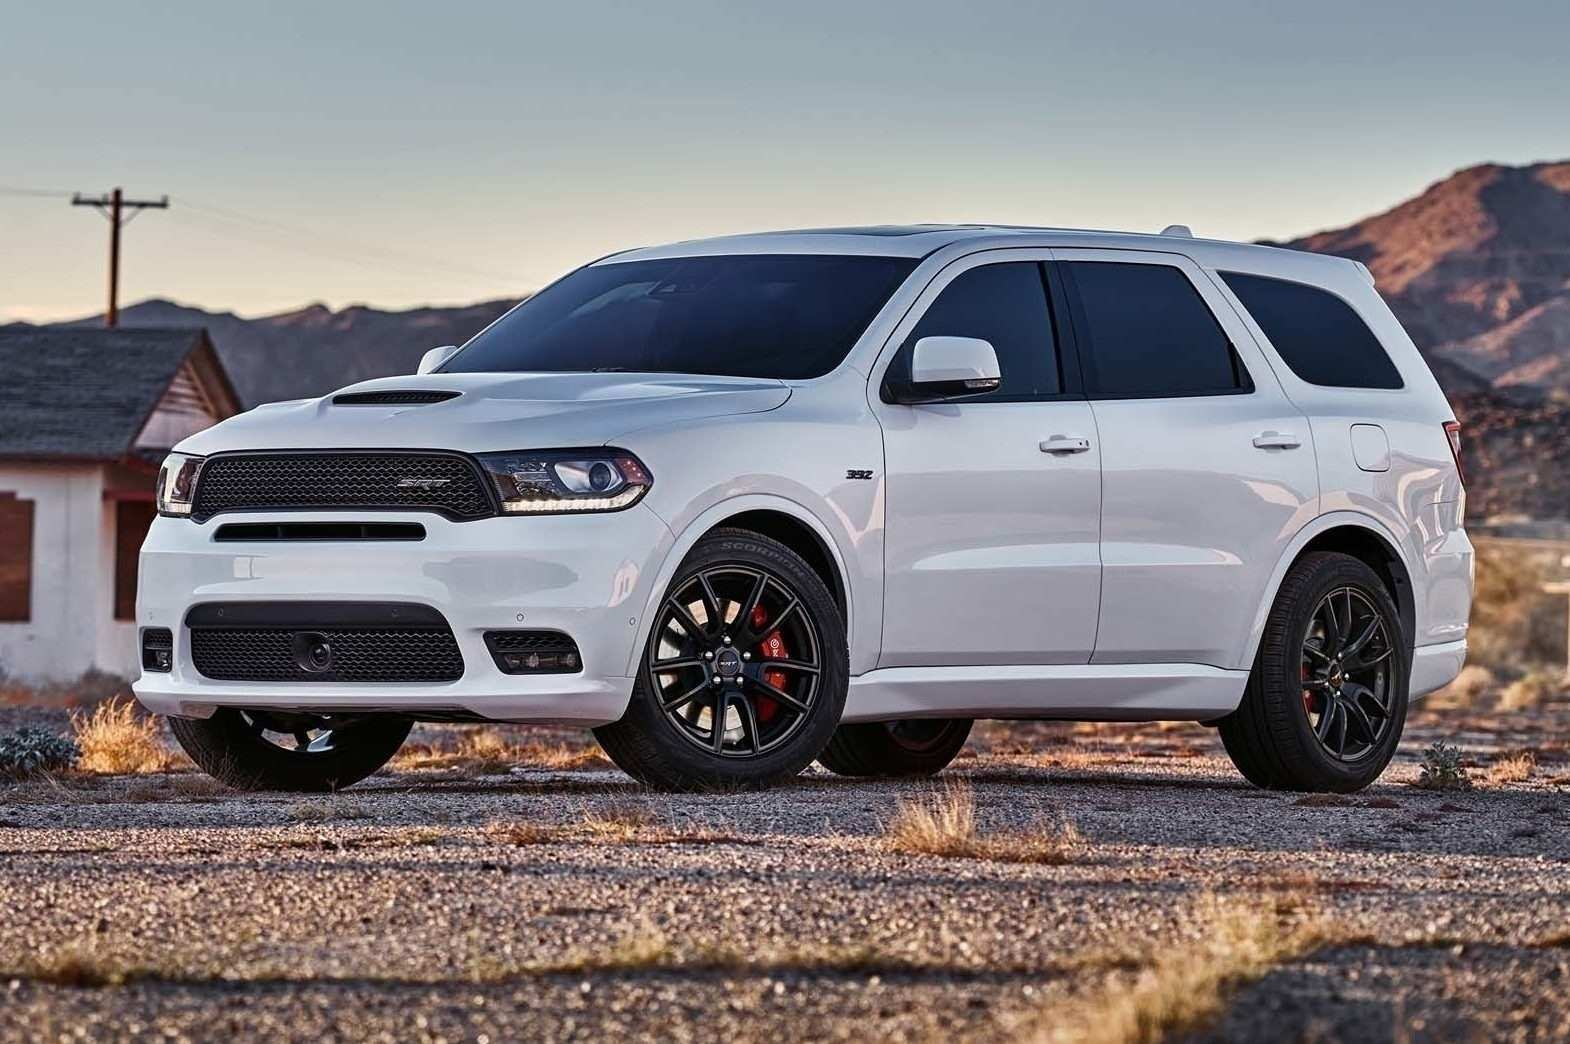 14 Best 2019 Dodge Durango Diesel Srt8 Performance